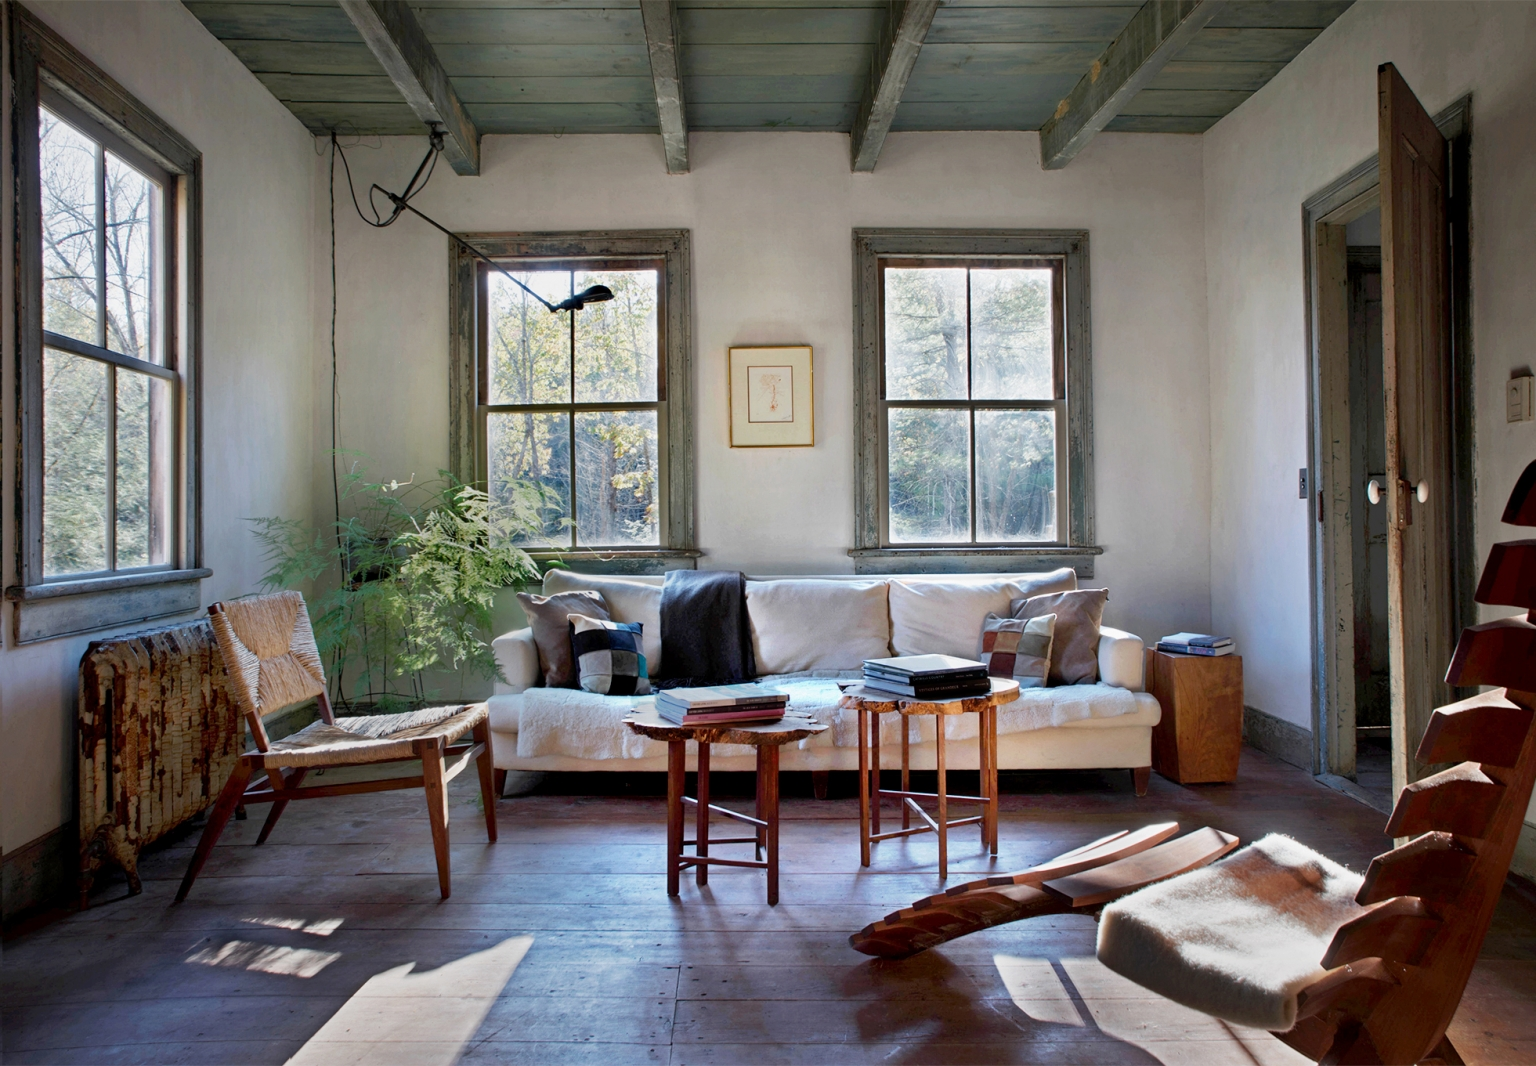 Saved from Abandonment: A Historic Hudson Valley Farmhouse Receives the Ultimate Makeunder